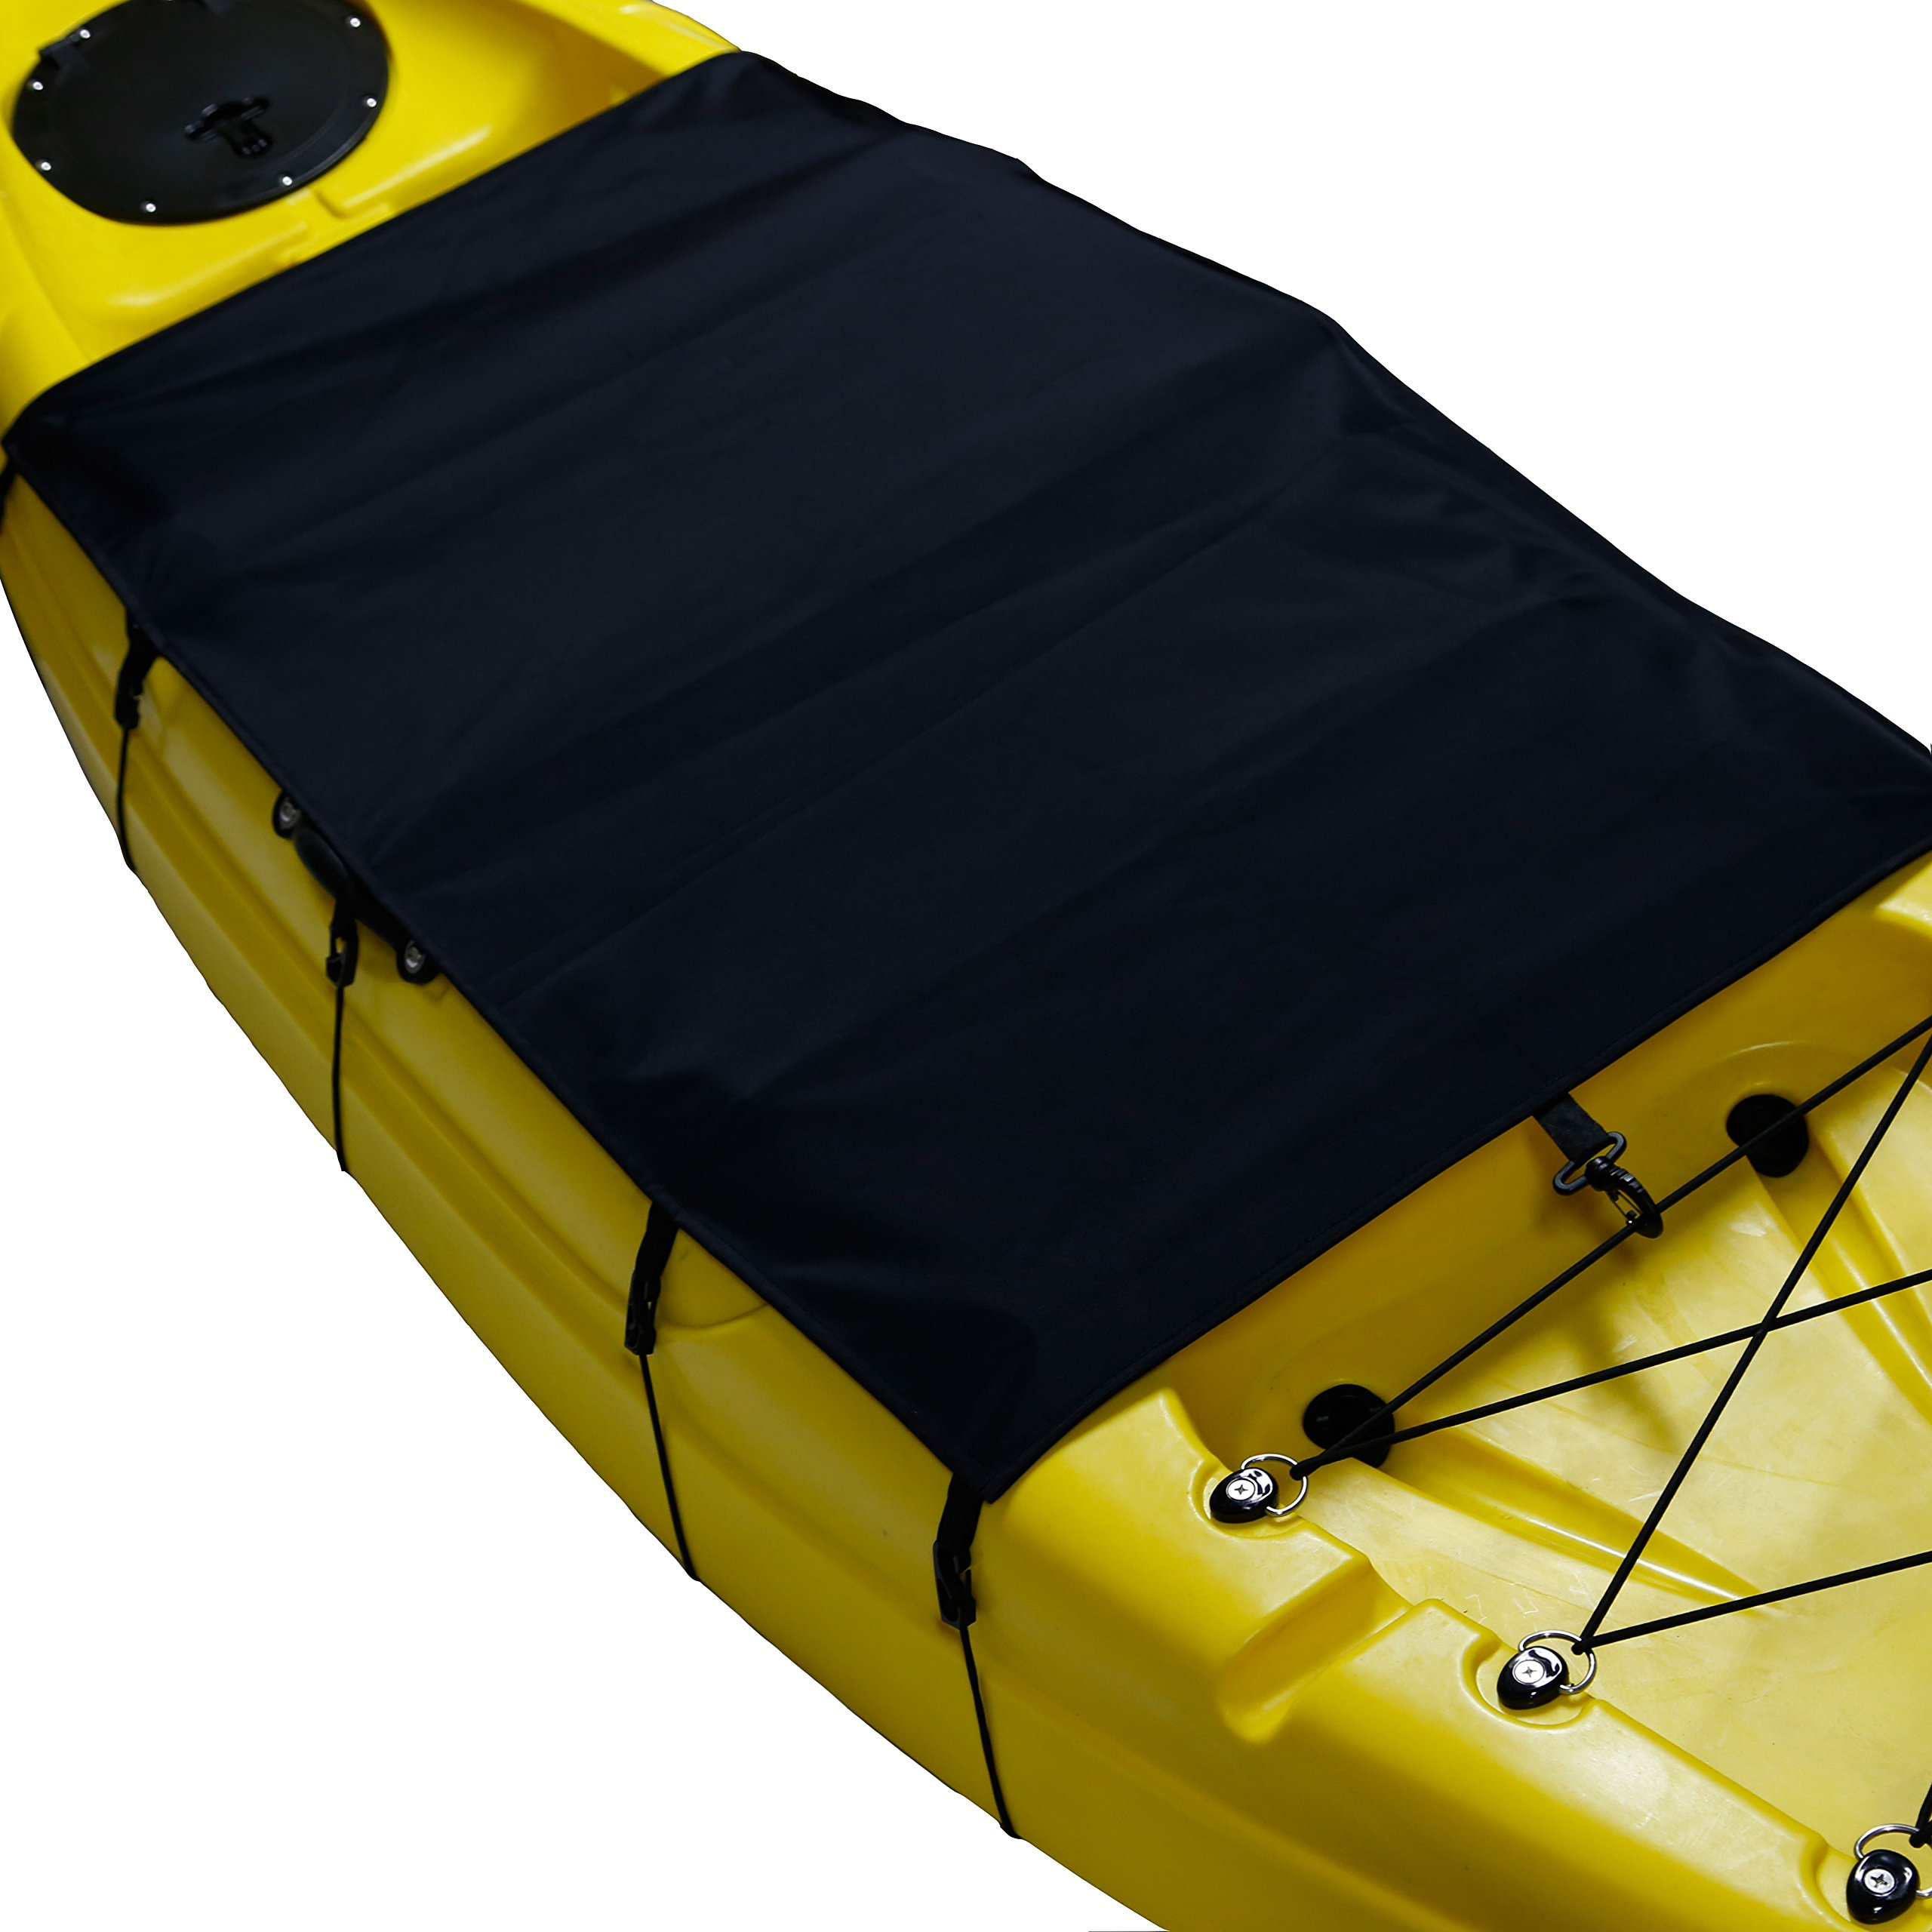 Omonic 2.2x3.9ft Durable Thick Waterproof Cockpit Drape Seal Kayak Cover Seat Cover fit Almost Kayak - Strentch Adjustable Bungee Cords wrap Perfect for Storage by Omonic